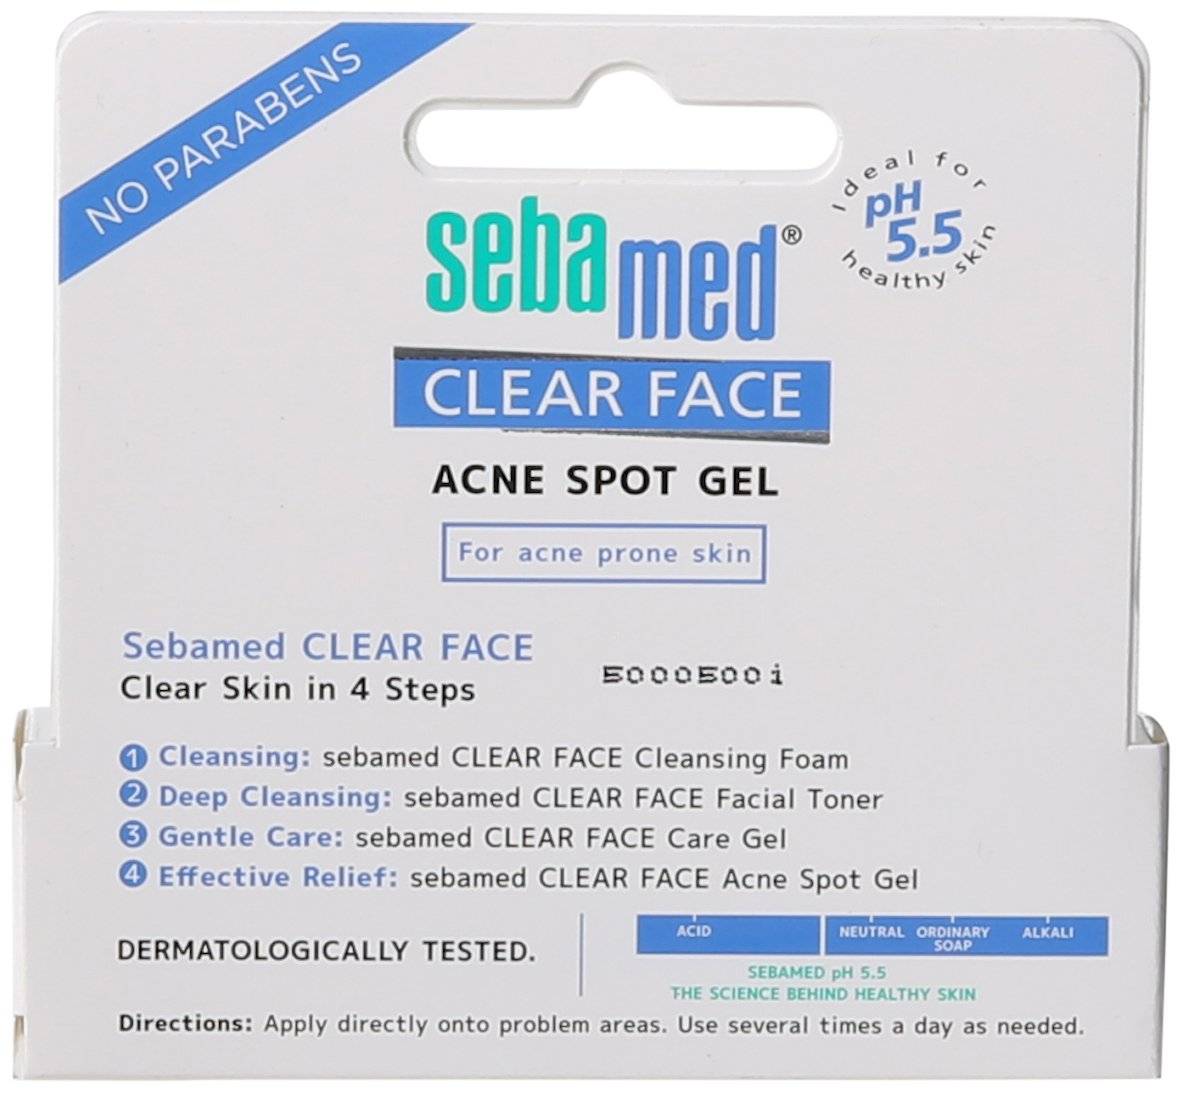 Buy Sebamed Clear Face Spot Gel 034 Fluid Ounce Online At Low Antibacterial Cleansing Foam 150ml Prices In India